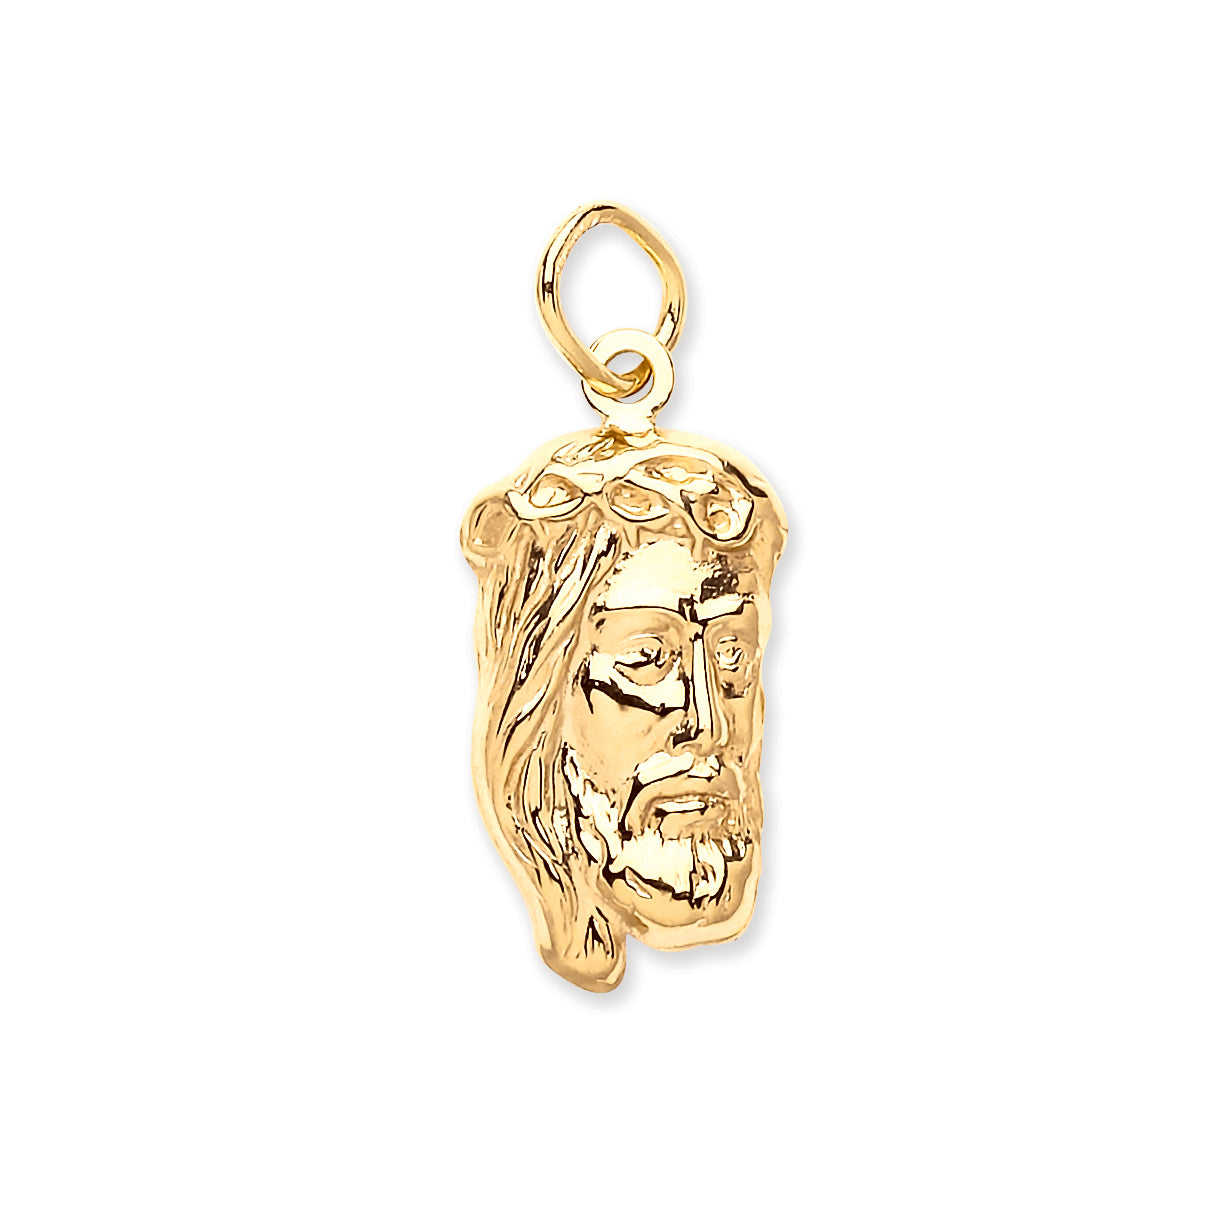 piece jewelry pendant franco inch iced is a length comes lab categories out the with about jesus in gold inches hop men necklace s diamond fully finish hip chain